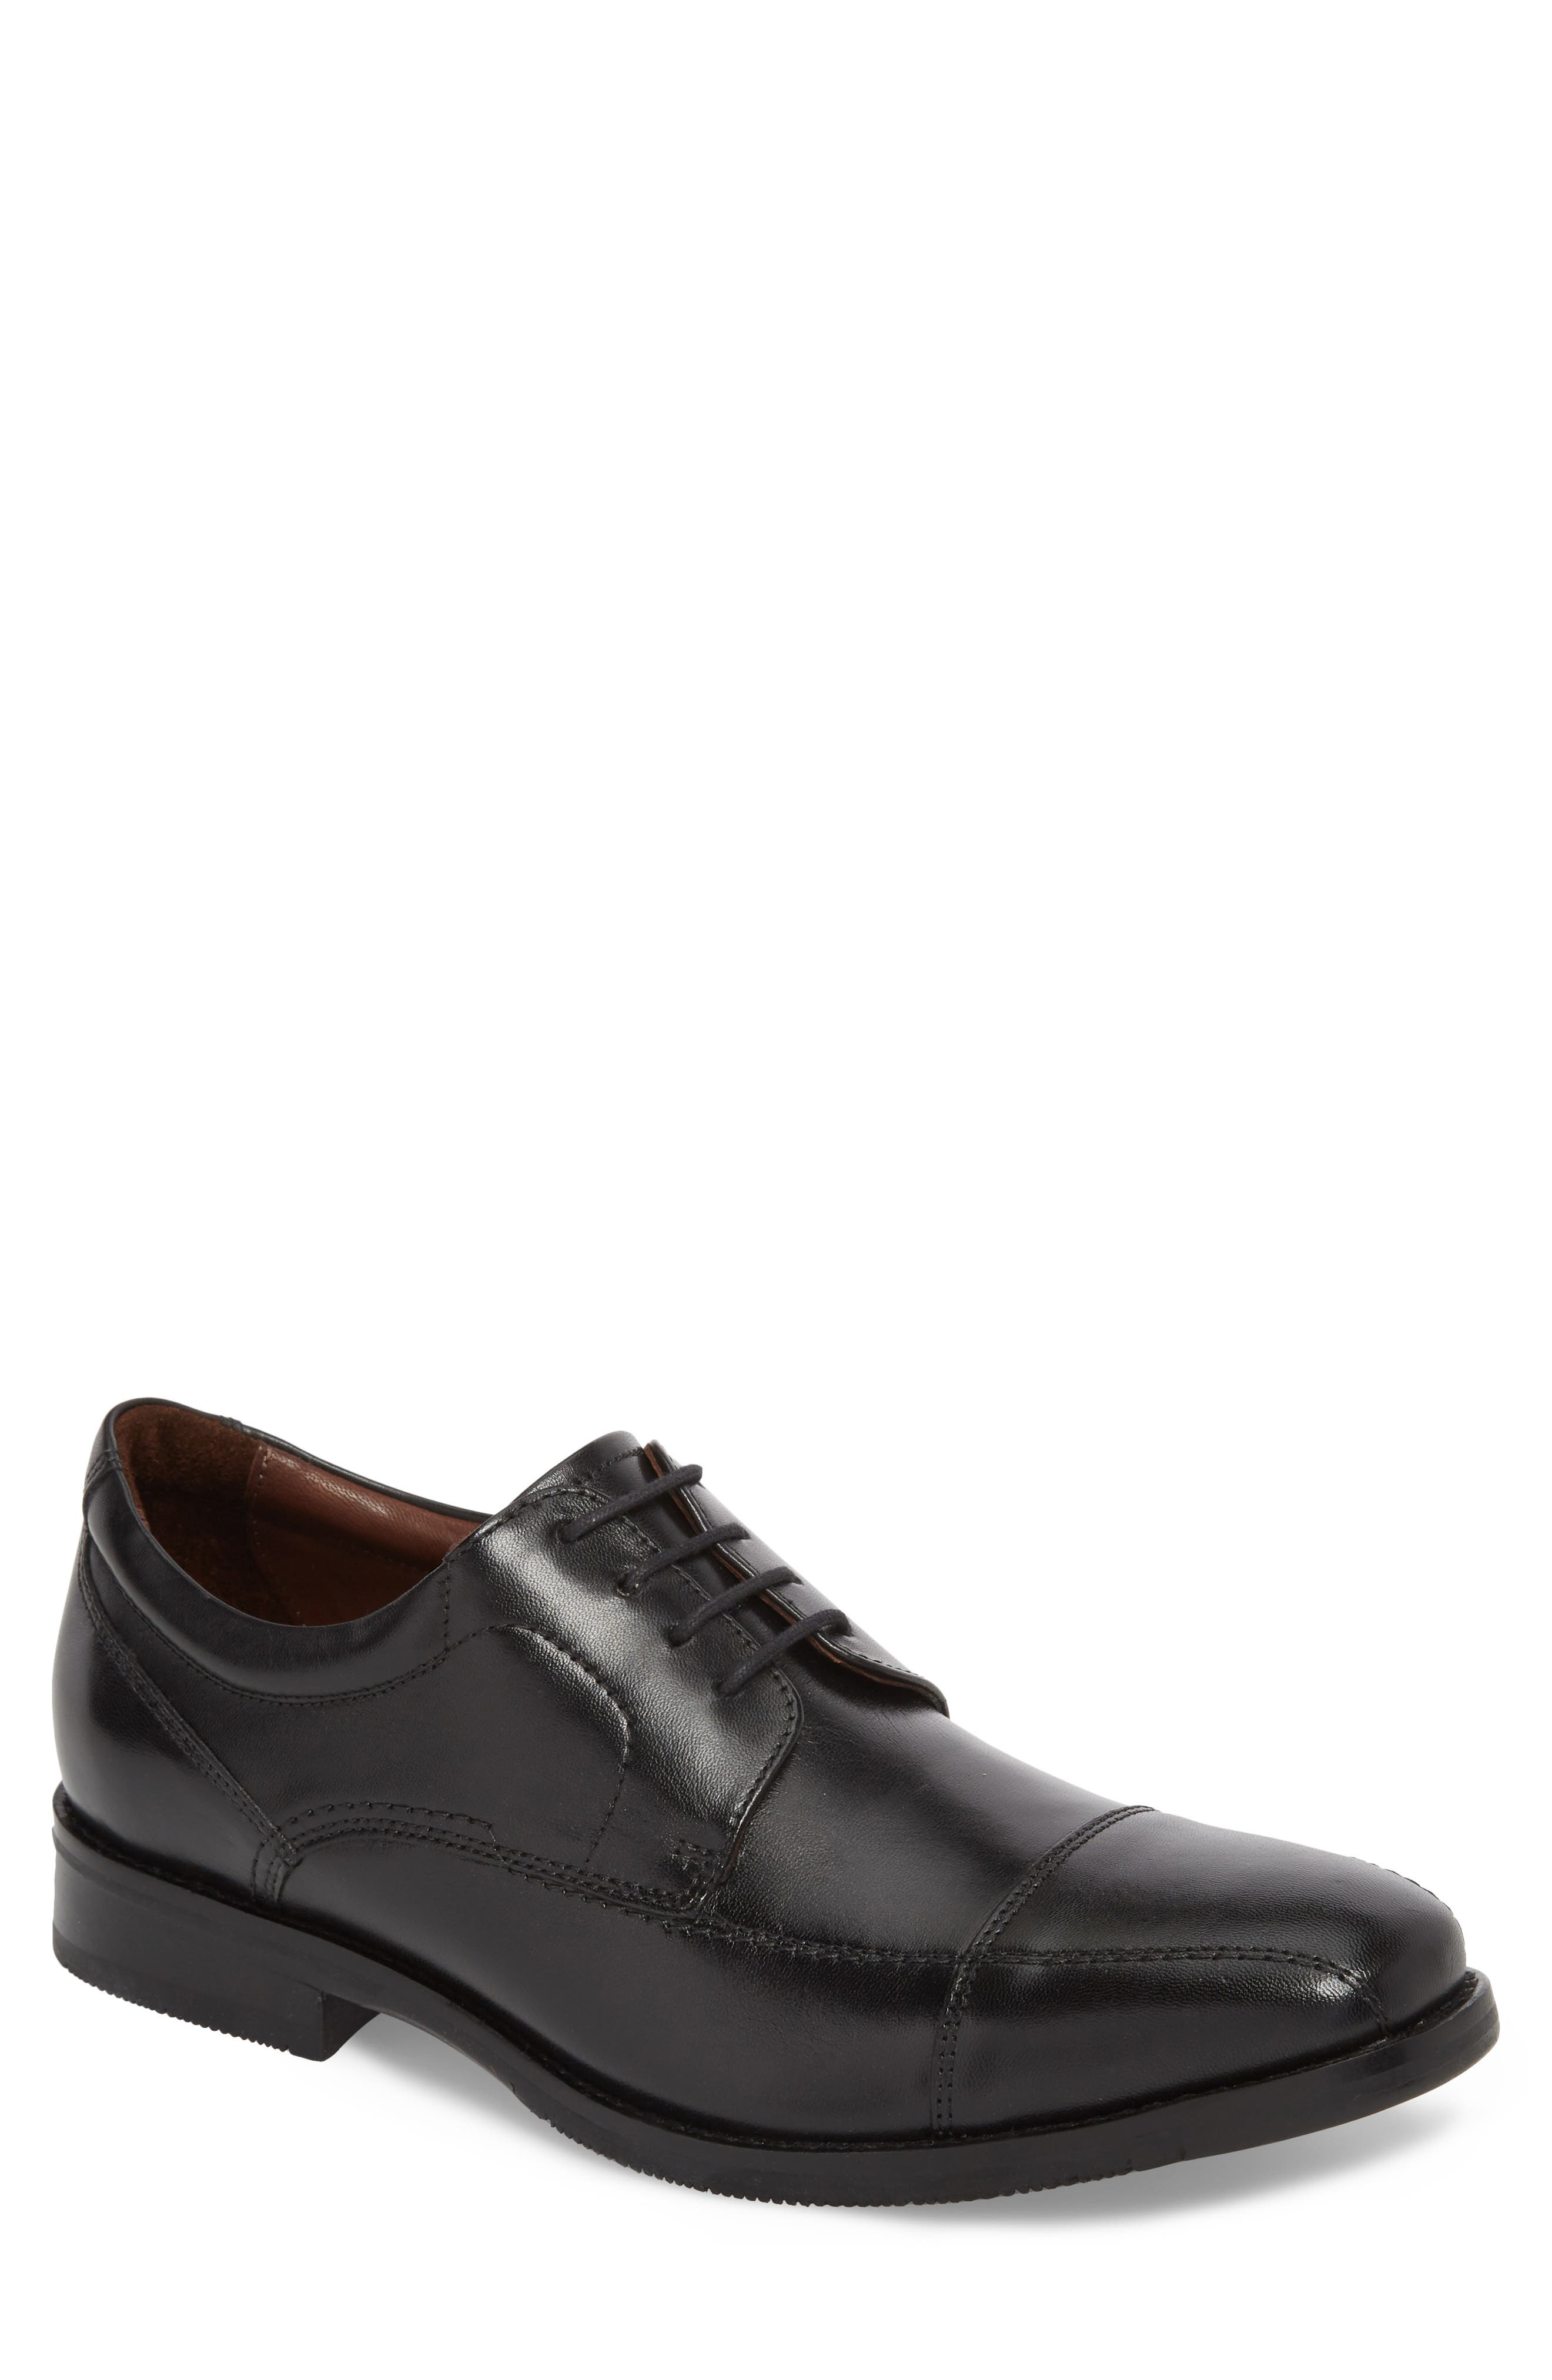 Bartlett Cap Toe Derby,                         Main,                         color, Black Leather